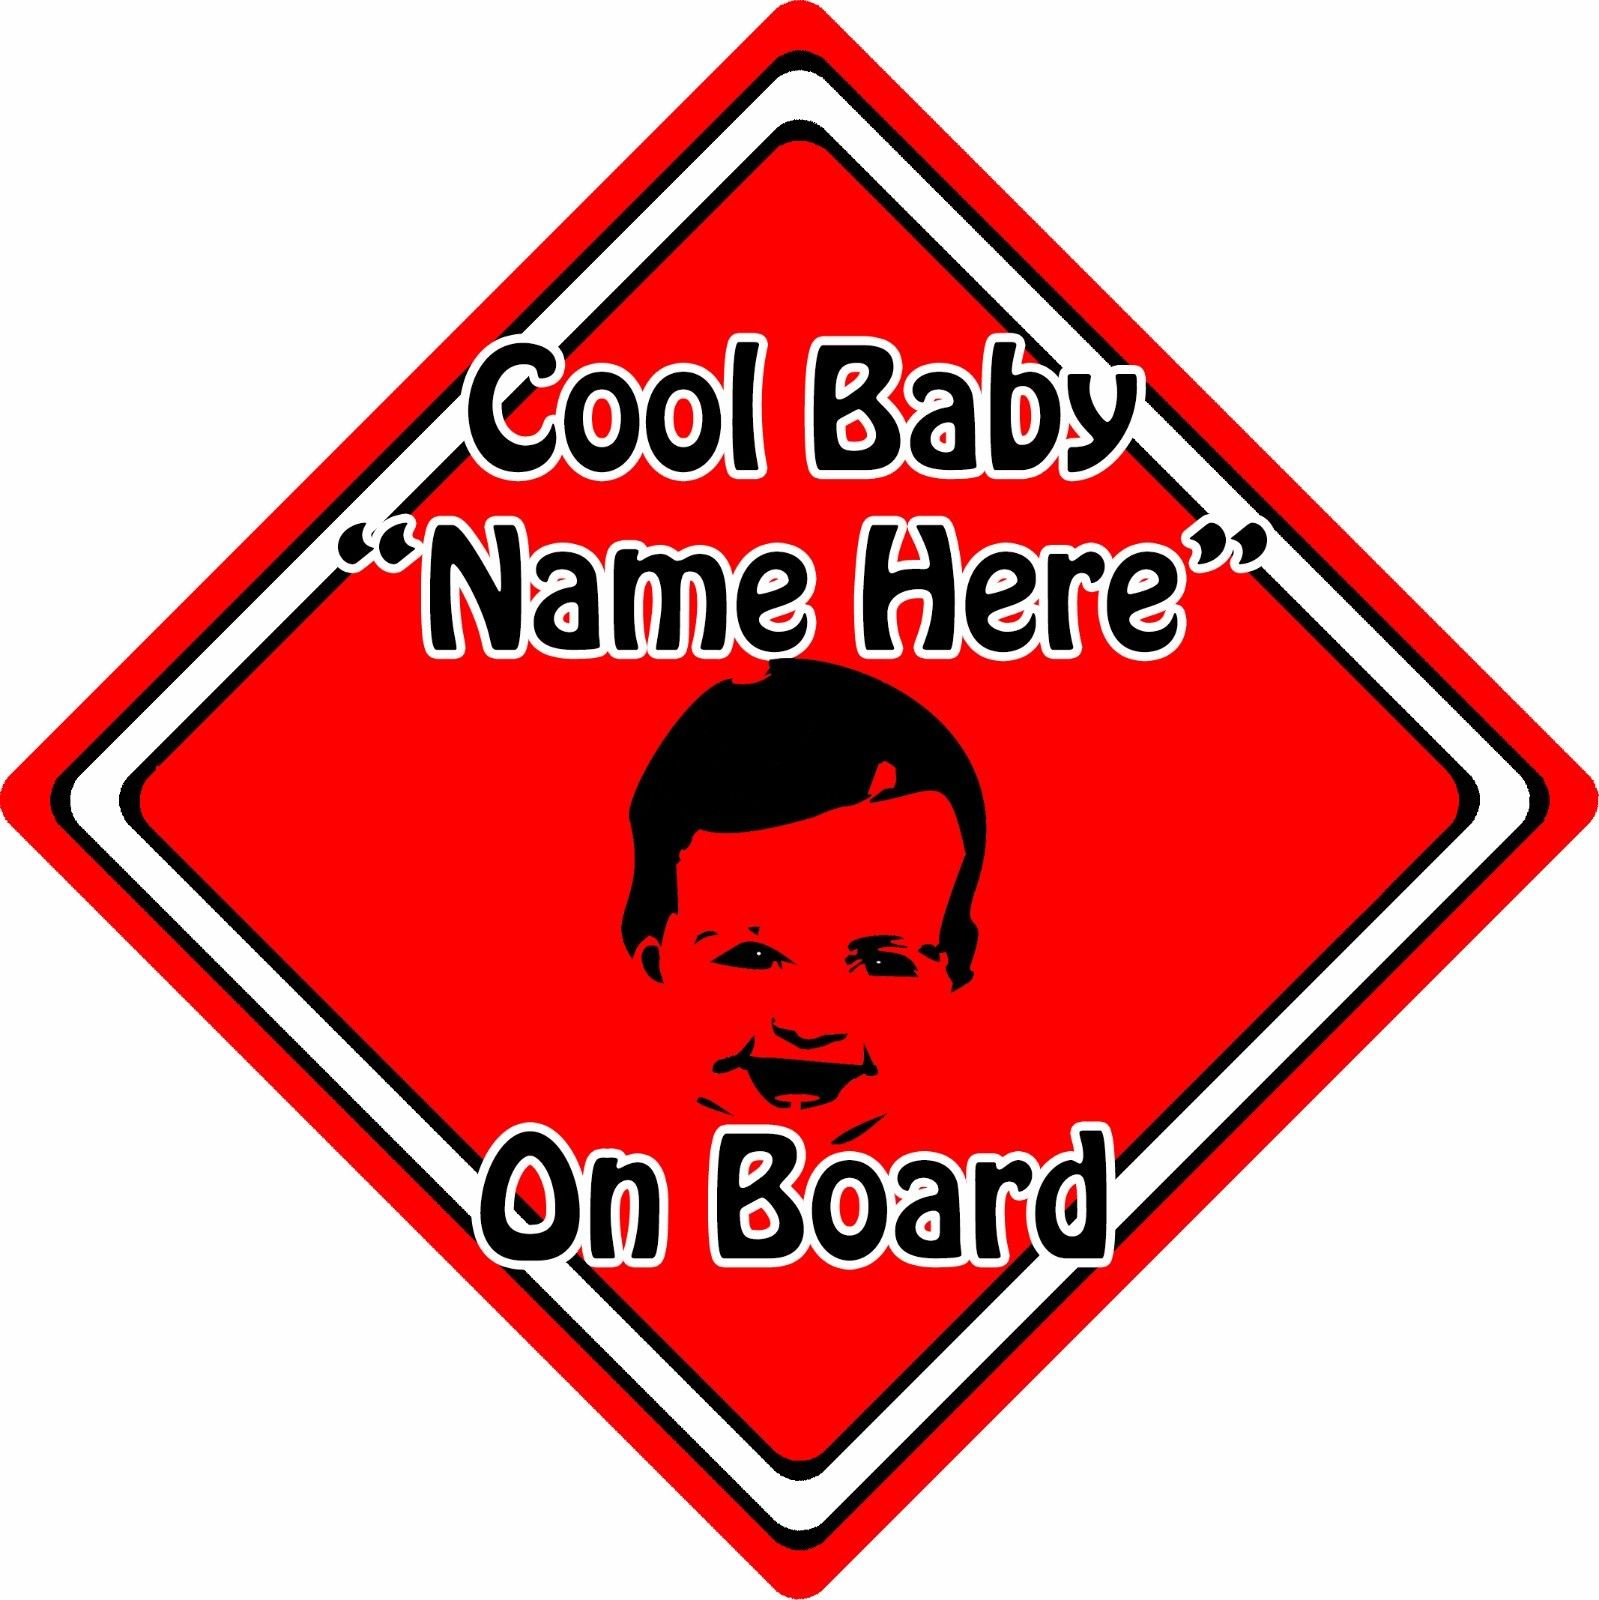 Personalised-Cool-BabyChild-On-Board-Car-Sign-Baby-Face-Silhouette-Red-152406128979